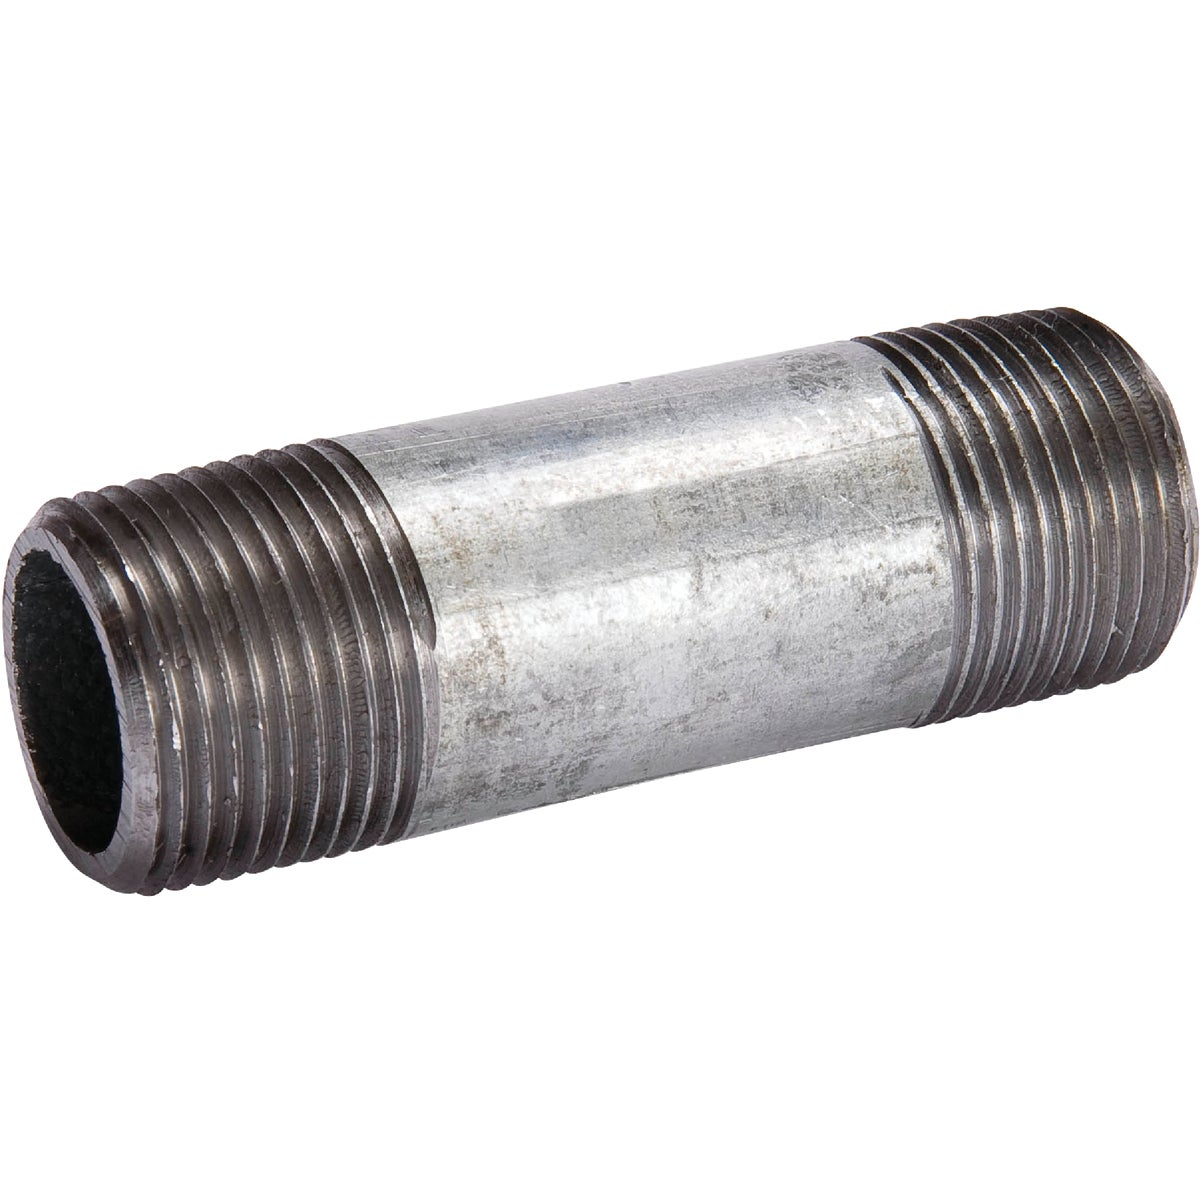 1-1/4X6 GALV NIPPLE - 10710 by Southland Pipe Nippl